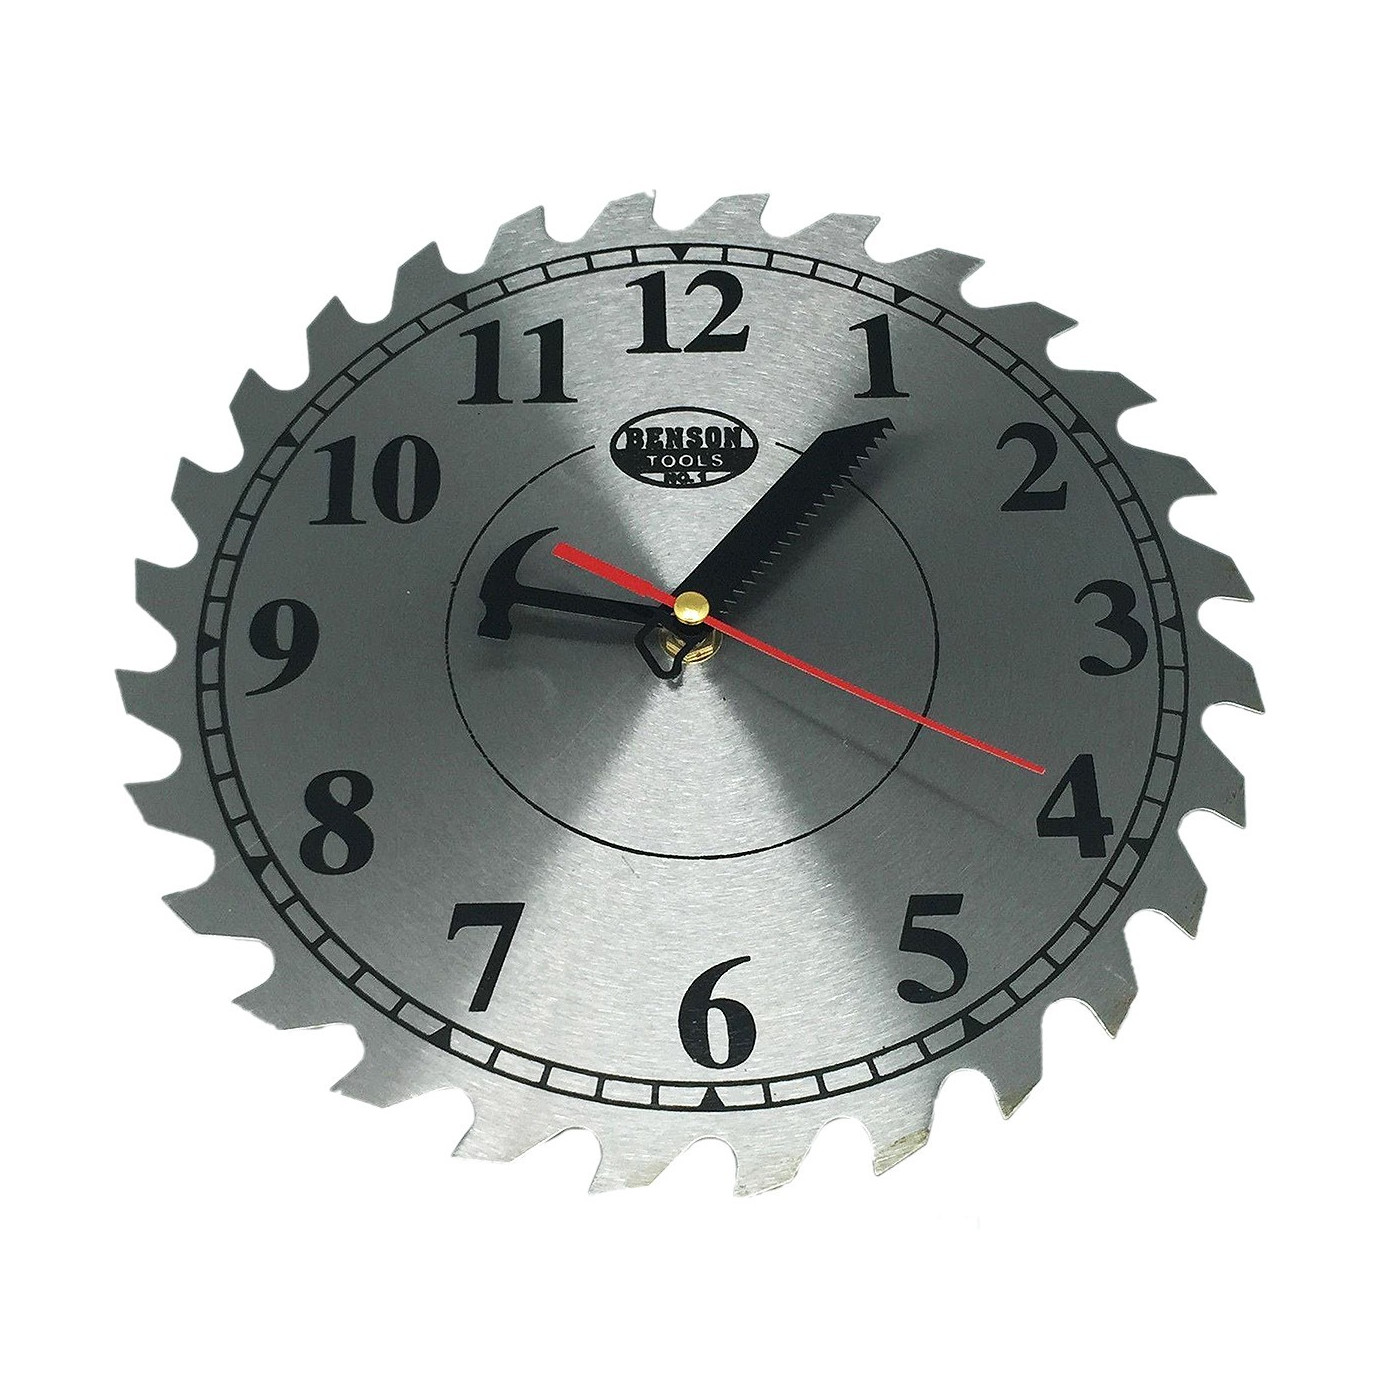 Garage shop clock, 25 cm  - 1